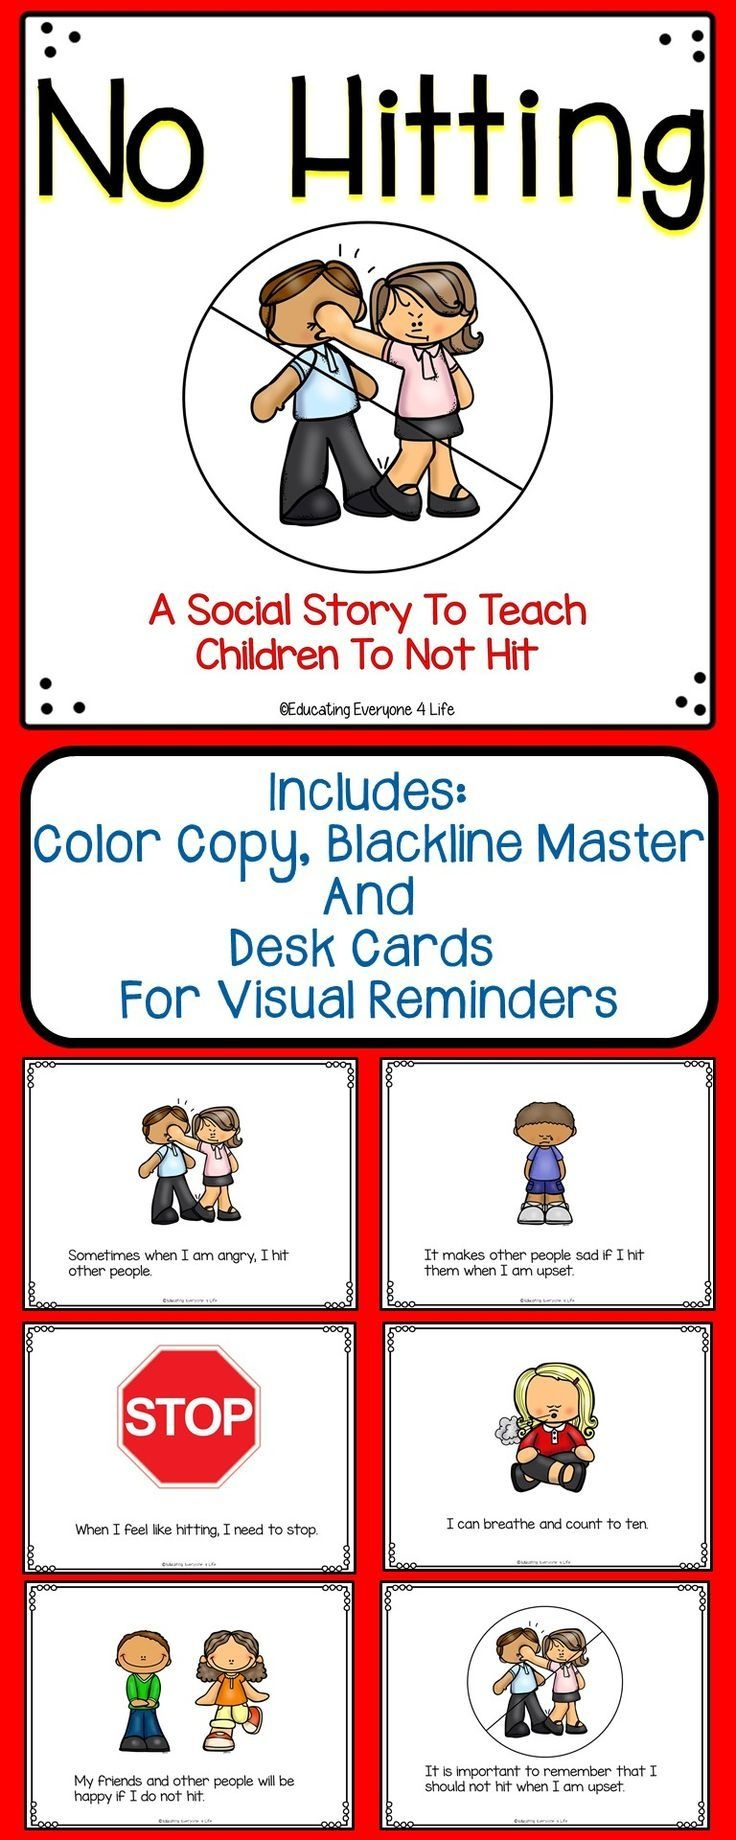 Social Story For Children - No Hitting | Classroom Management - Free Printable Social Stories Making Friends